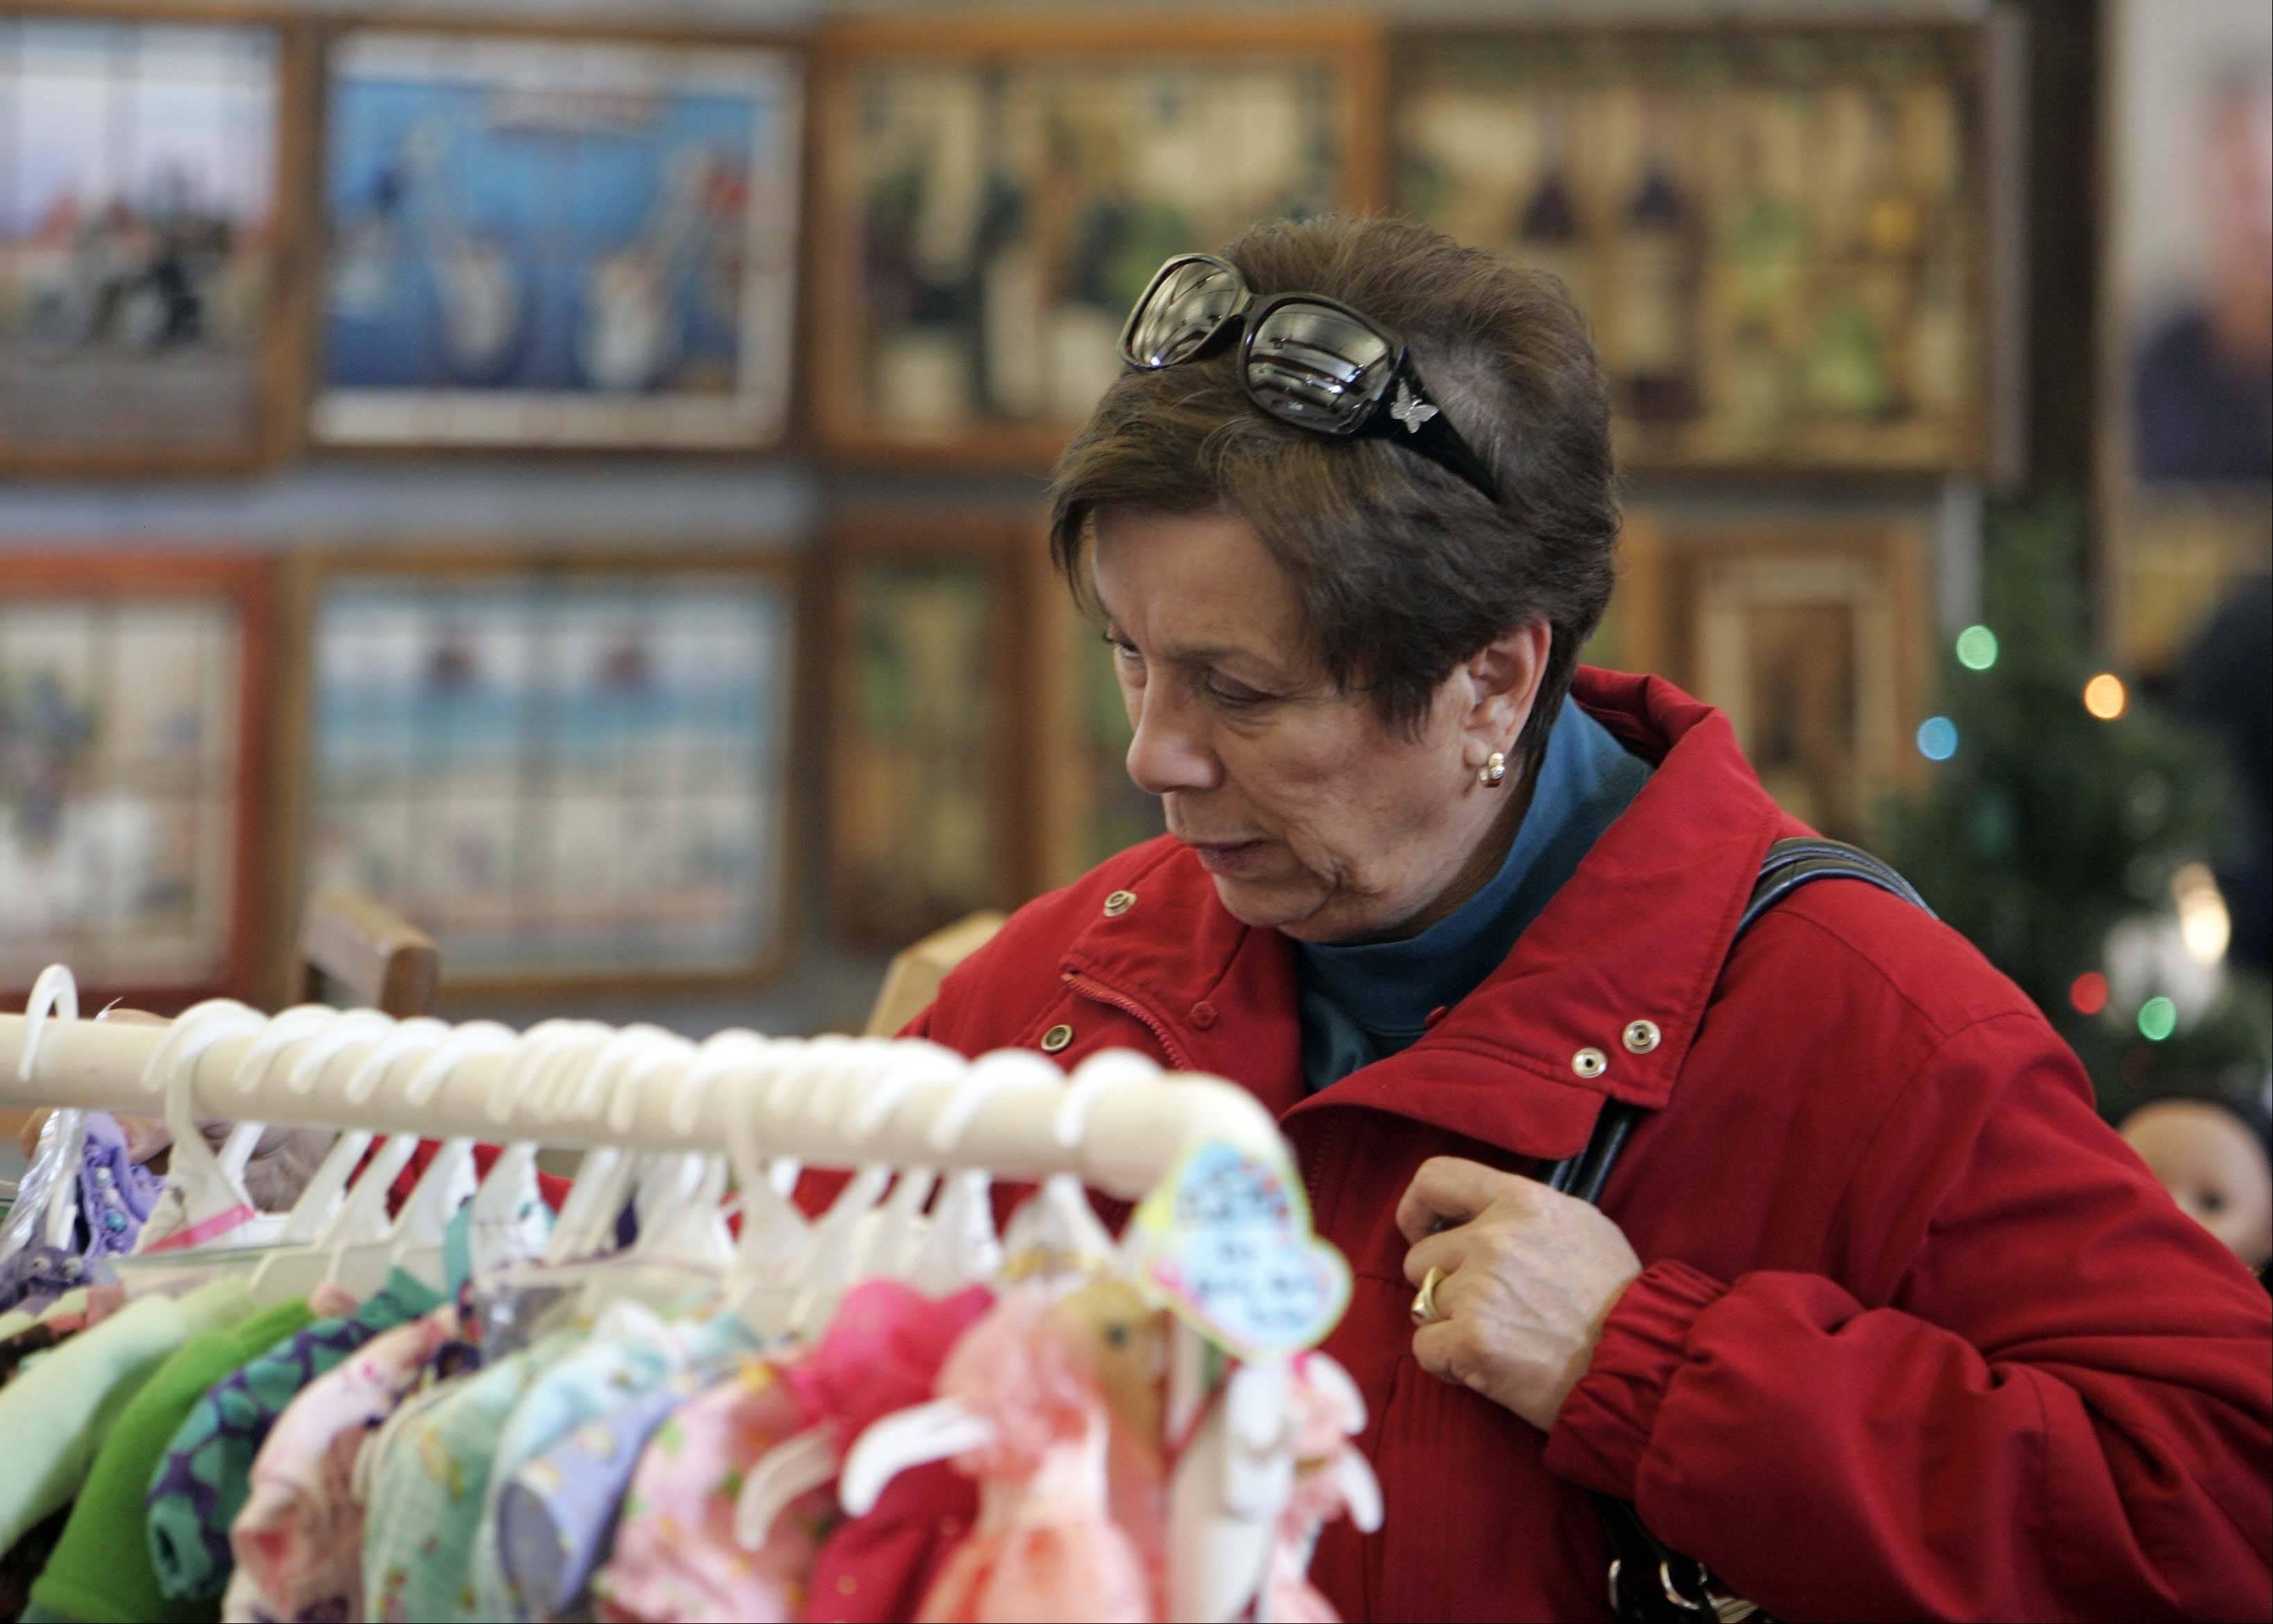 Angela Bell of Warrenville looks over some doll clothes during last year's Christmas on the Fox juried art and craft show at the Kane County Fairgrounds in St. Charles. Bell was helping a friend find some handmade doll clothes for her granddaughter.